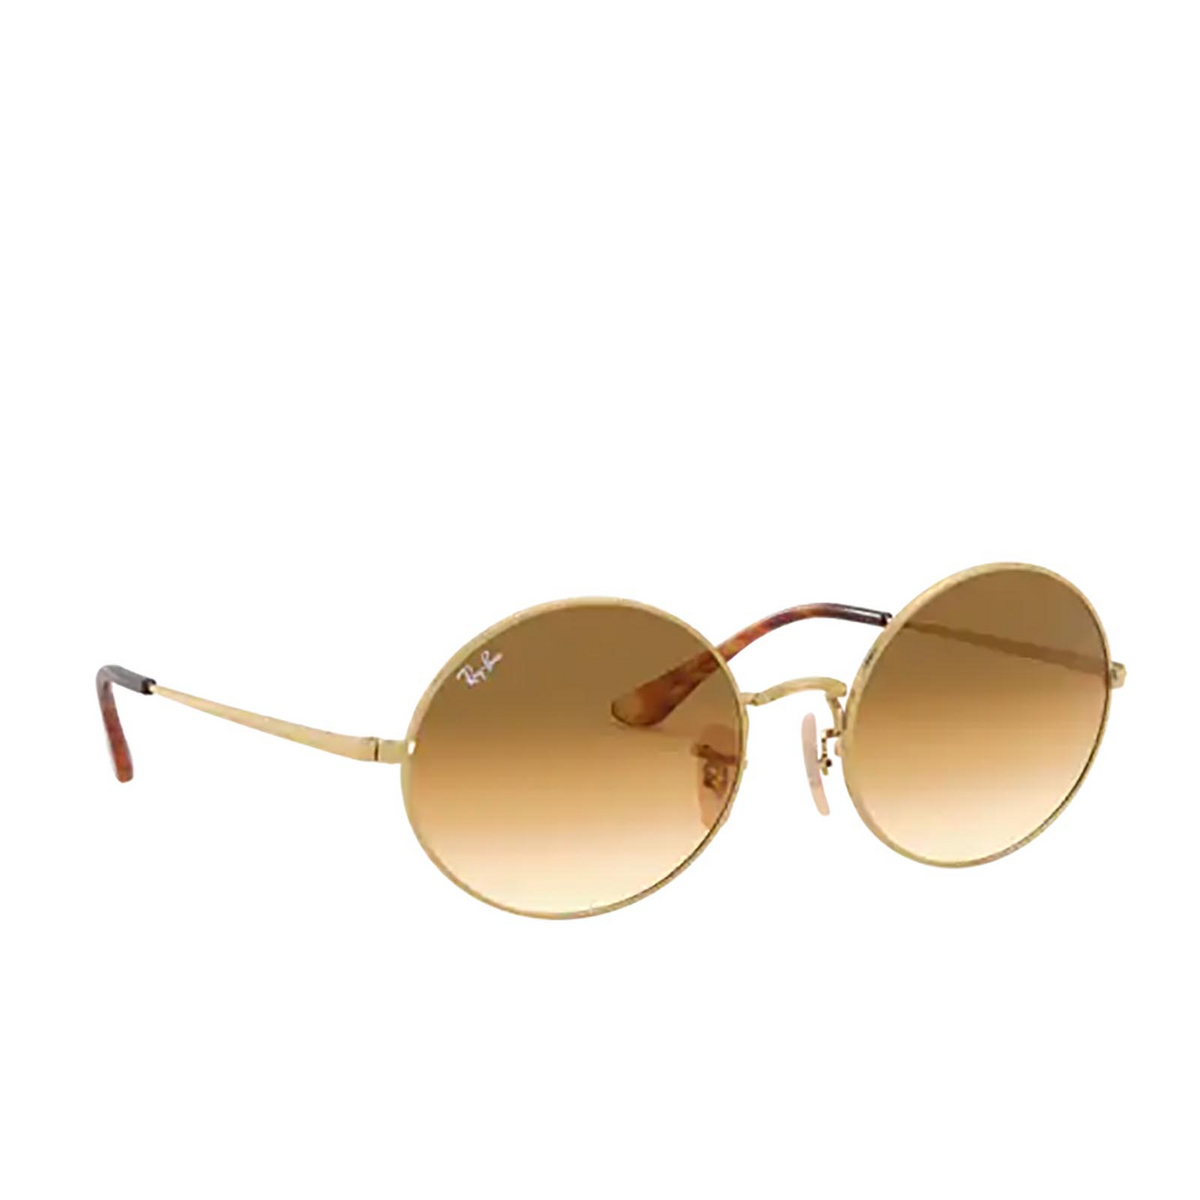 Ray-Ban® Oval Sunglasses: Oval RB1970 color Arista 914751 - three-quarters view.